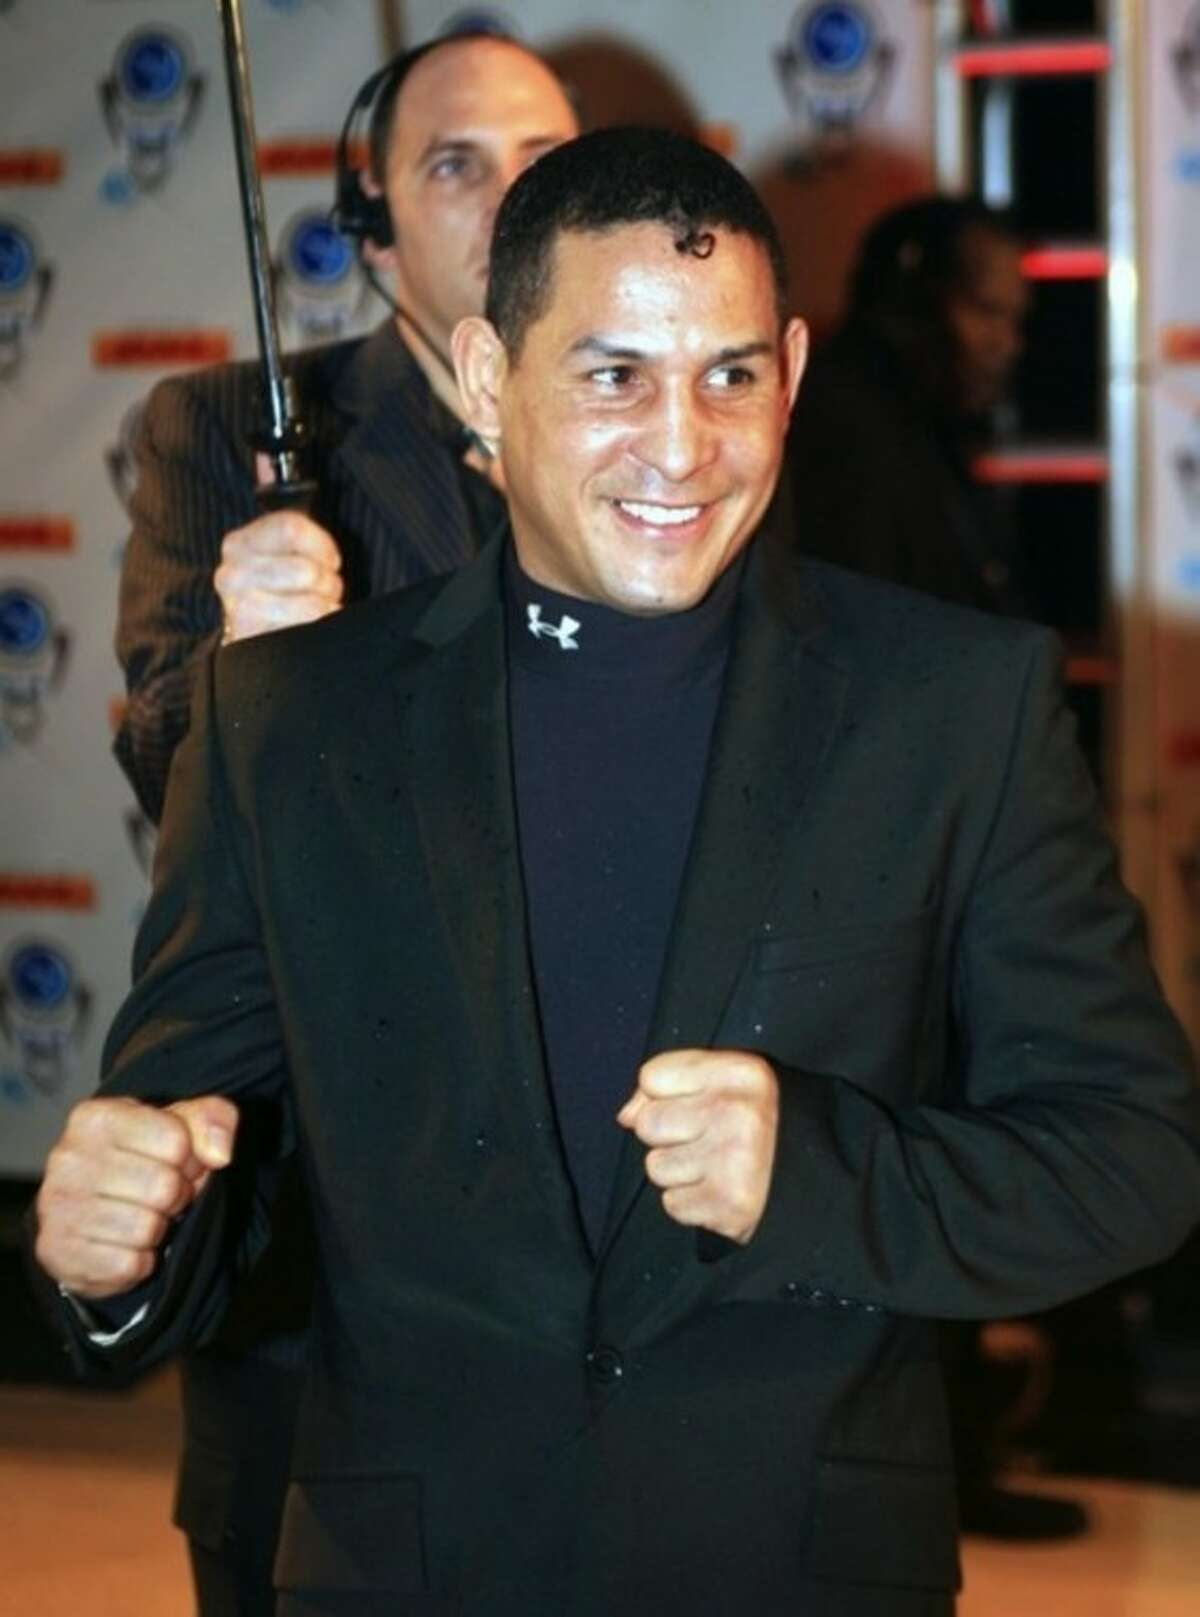 """FILE - In this Dec. 14, 2006, file photo, Hector """"Macho"""" Camacho arrives for an event in Miami Beach, Fla. Police in Puerto Rico say former boxing champion Camacho has been shot and critically wounded. Camacho was shot in the face while in a car outside a bar in Bayamon, one of the cities that make up the San Juan metropolitan area. A statement from police in Bayamon said he was shot Tuesday night, Nov. 20, 2012. (AP Photo/Luis M. Alvarez, File)"""